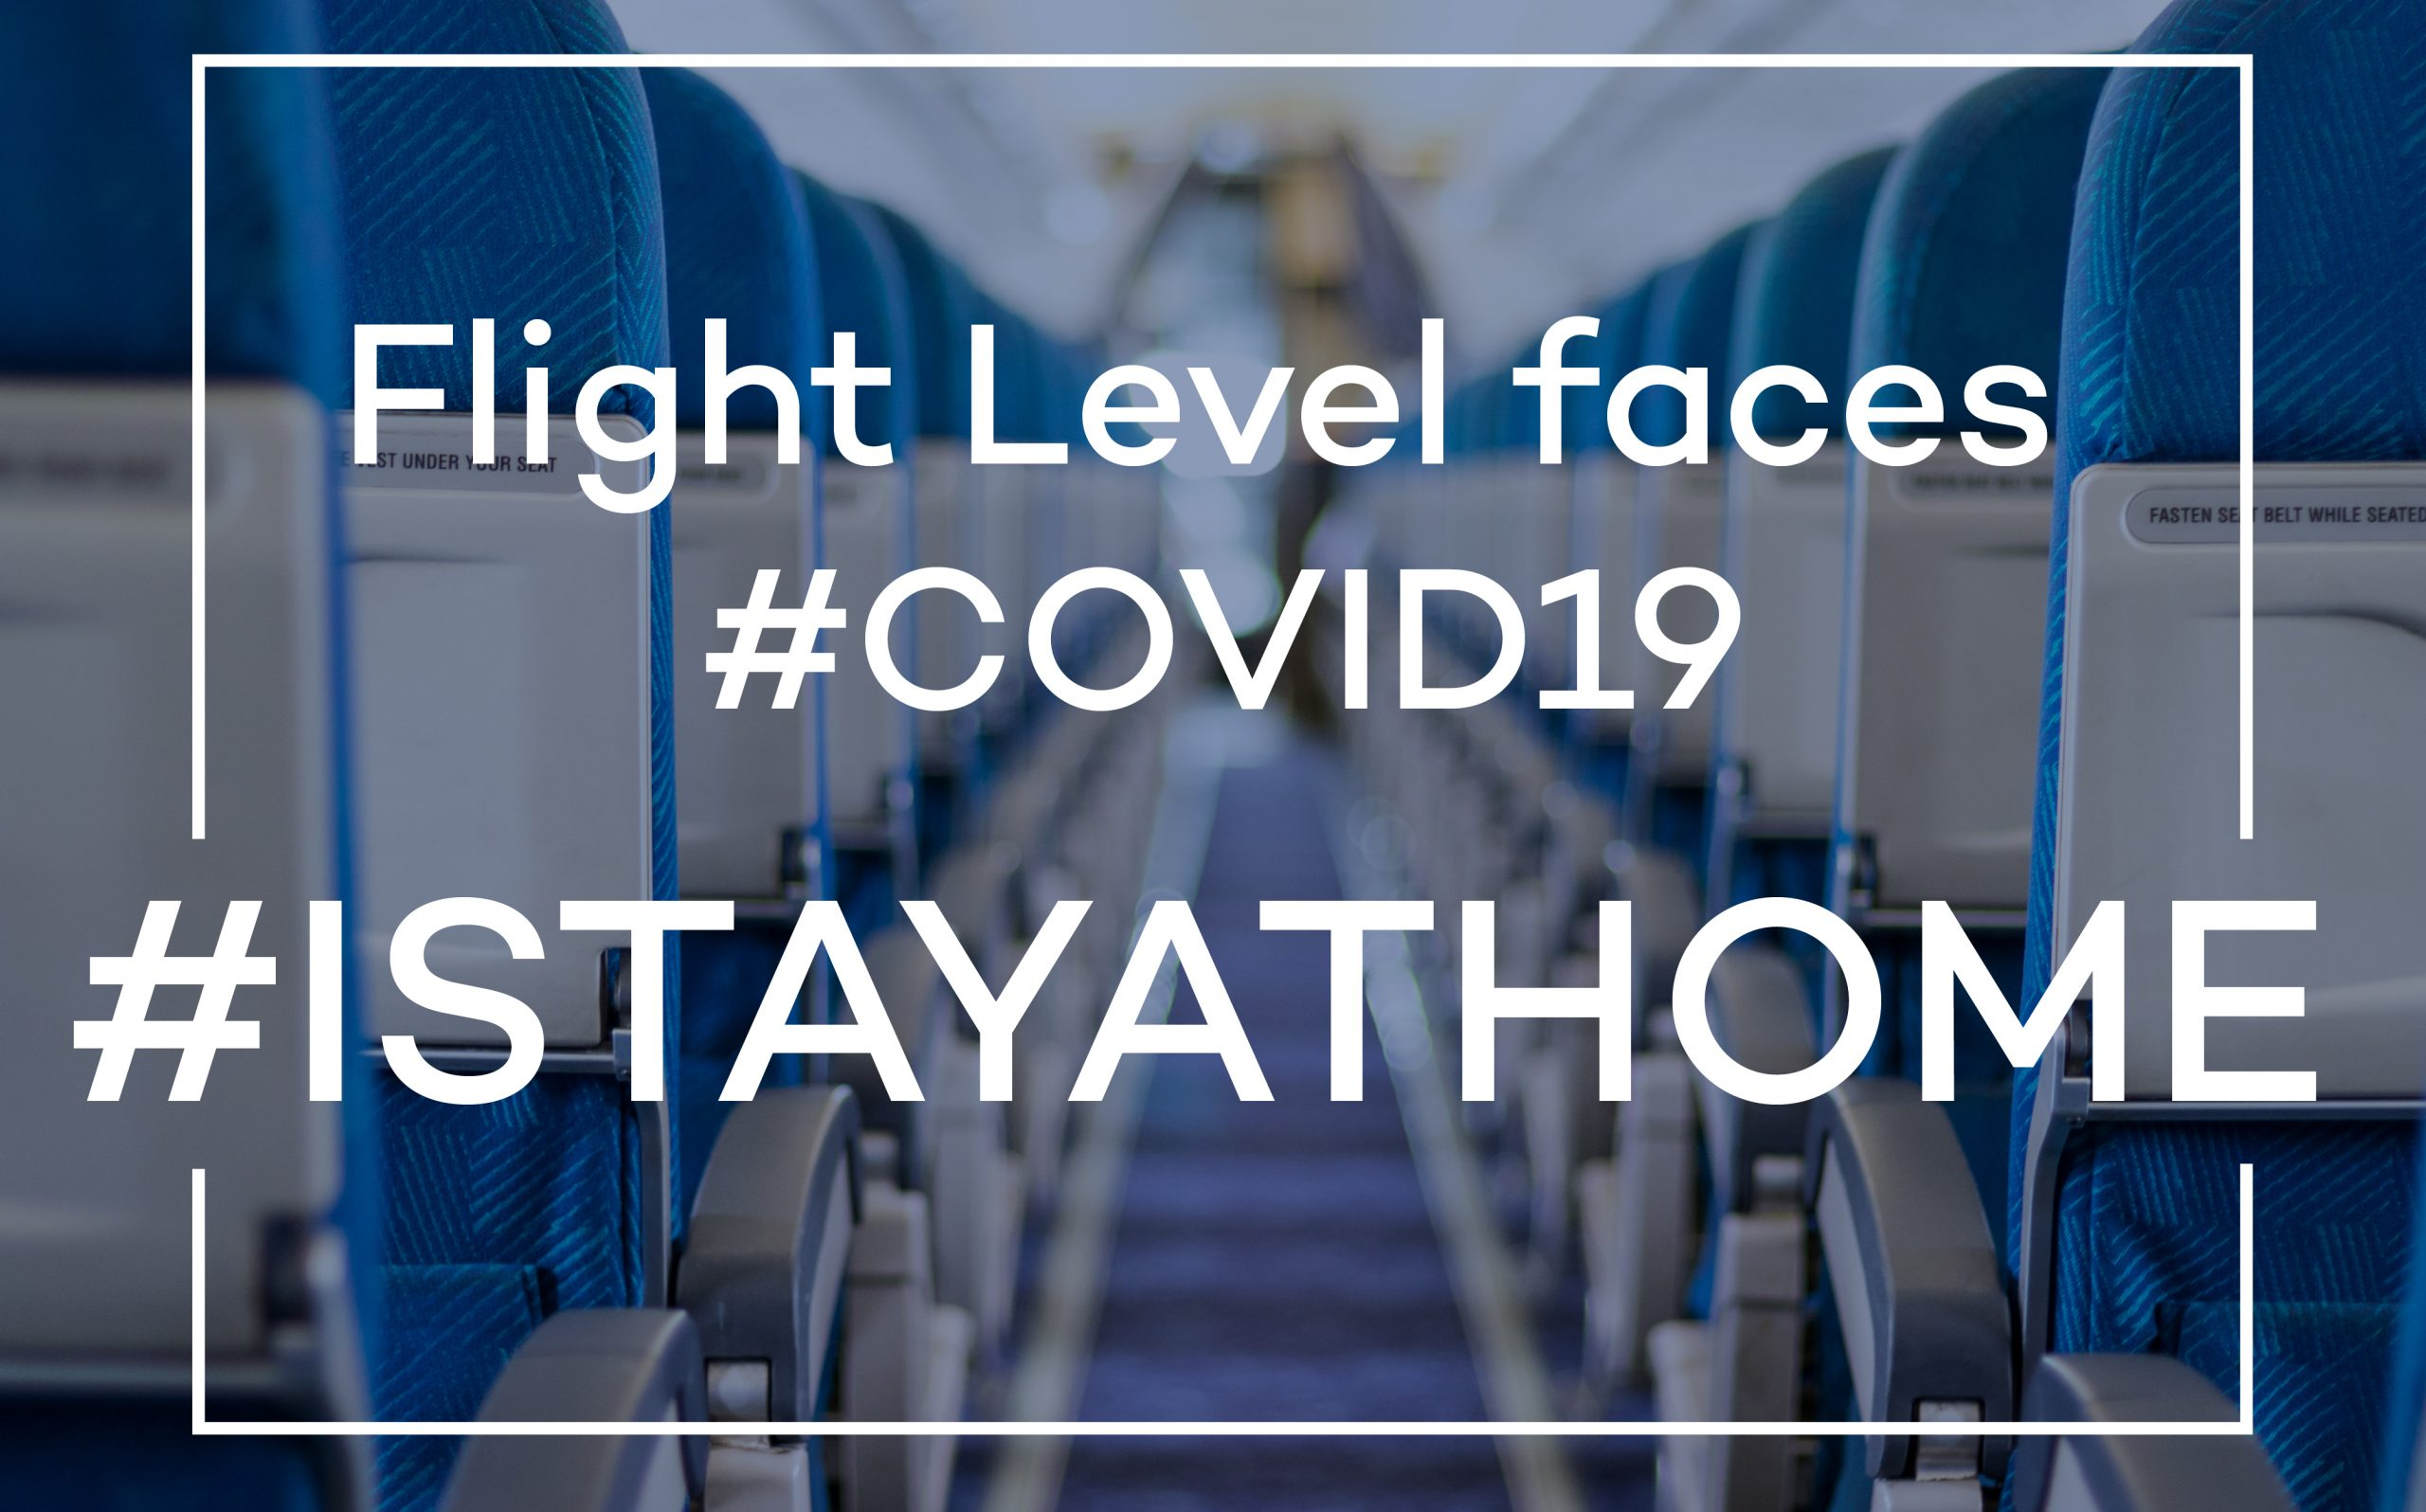 Flight Level Face covid_19